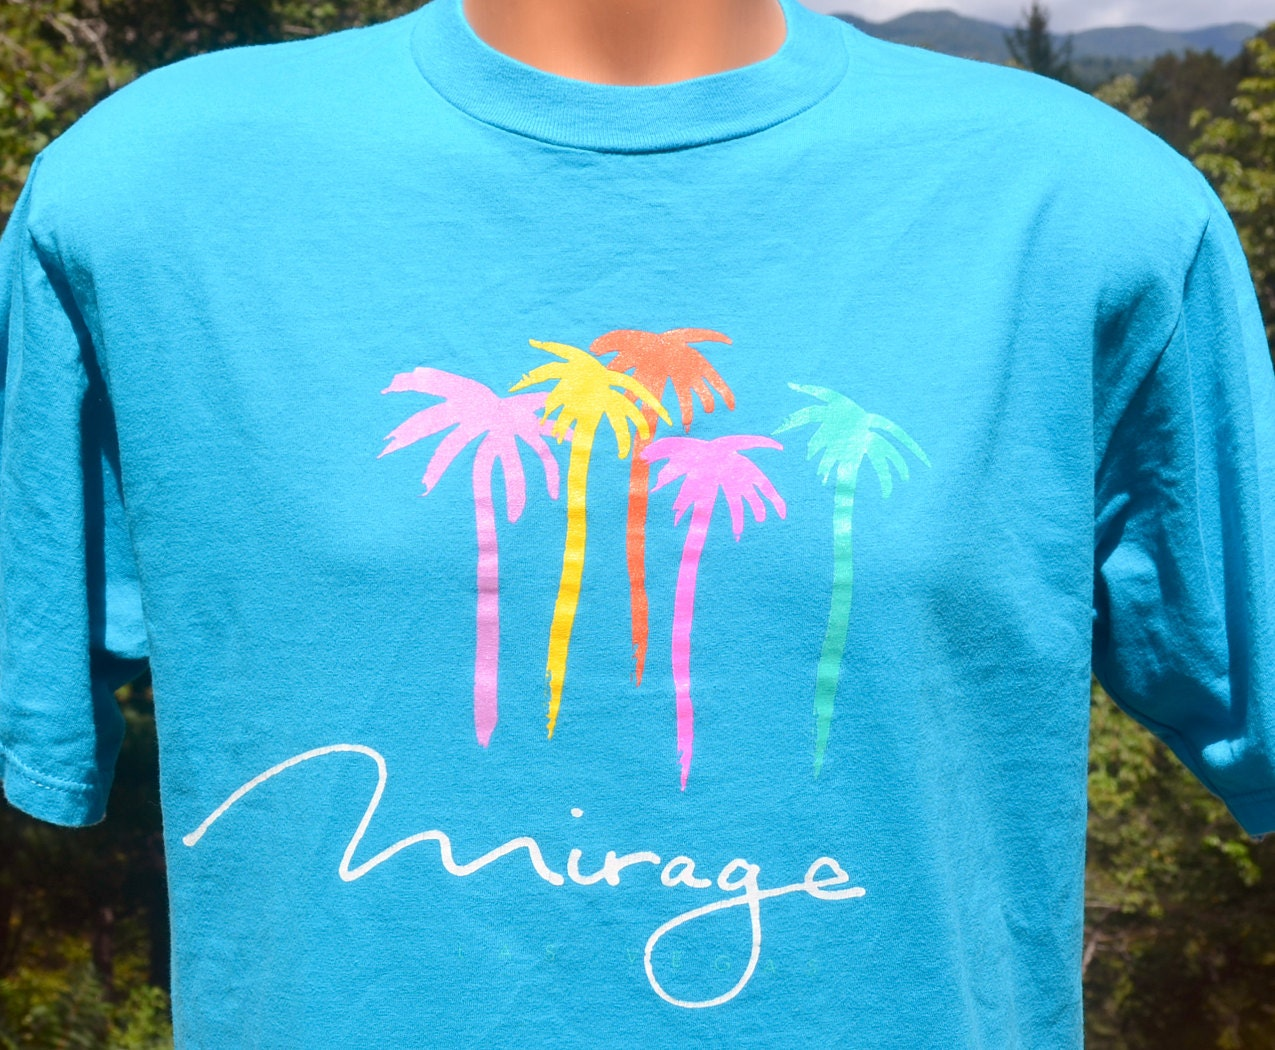 Vintage t shirt 80s mirage casino las vegas hotel neon rainbow for Same day t shirt printing las vegas